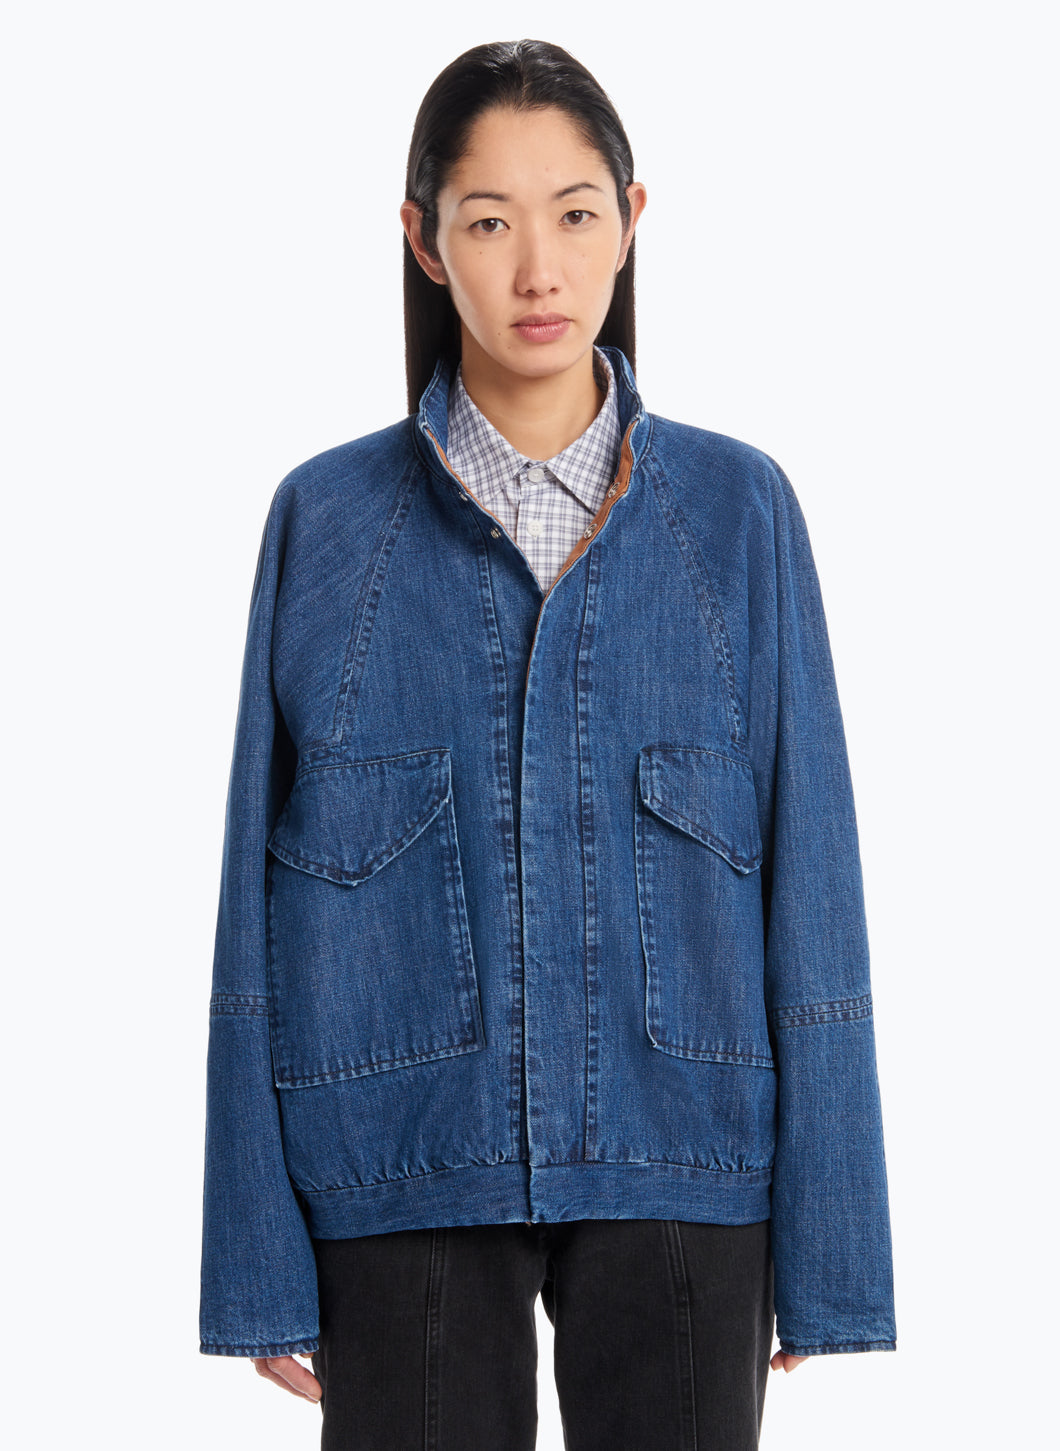 Bomber Jacket with Origami Collar in Stoned Denim